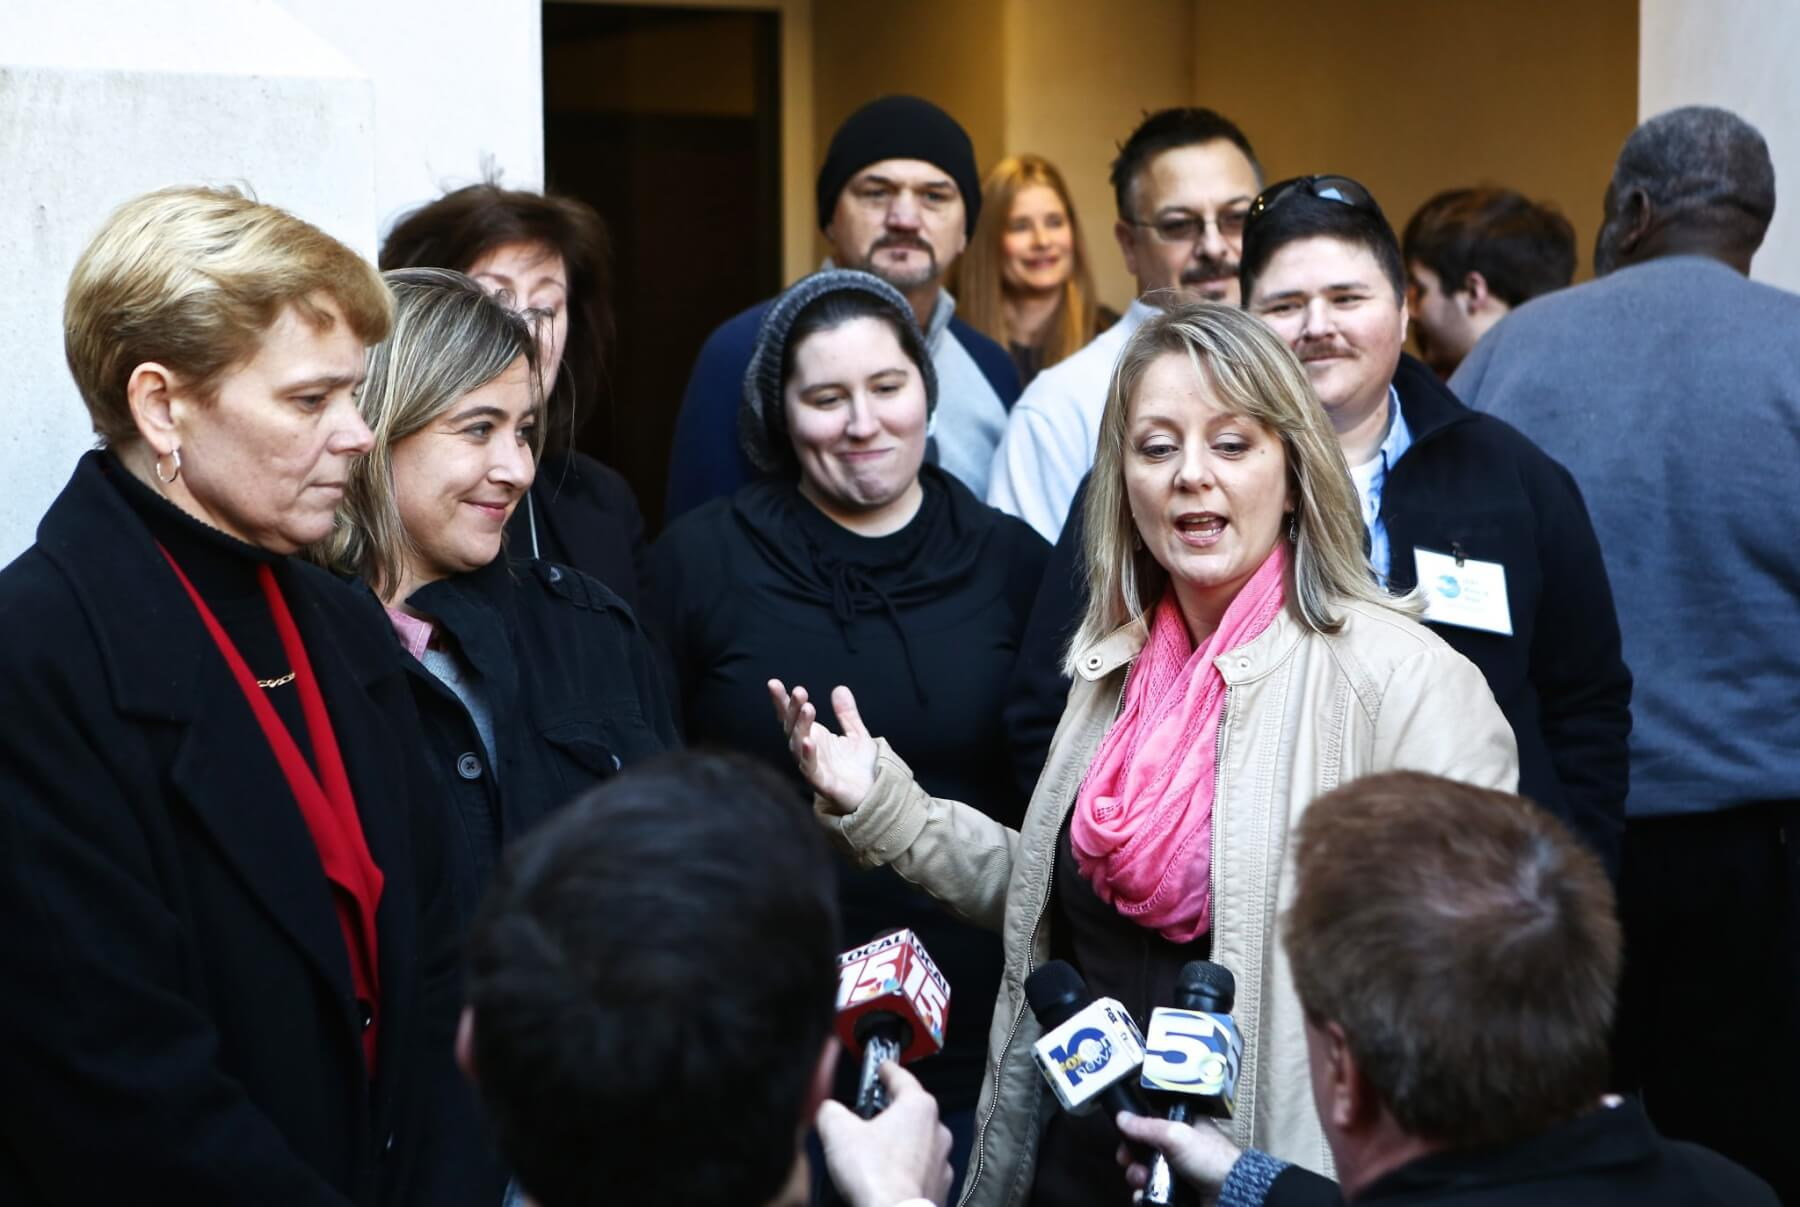 UPDATED: Higher court denies request for stay, same-sex couples may marry Monday